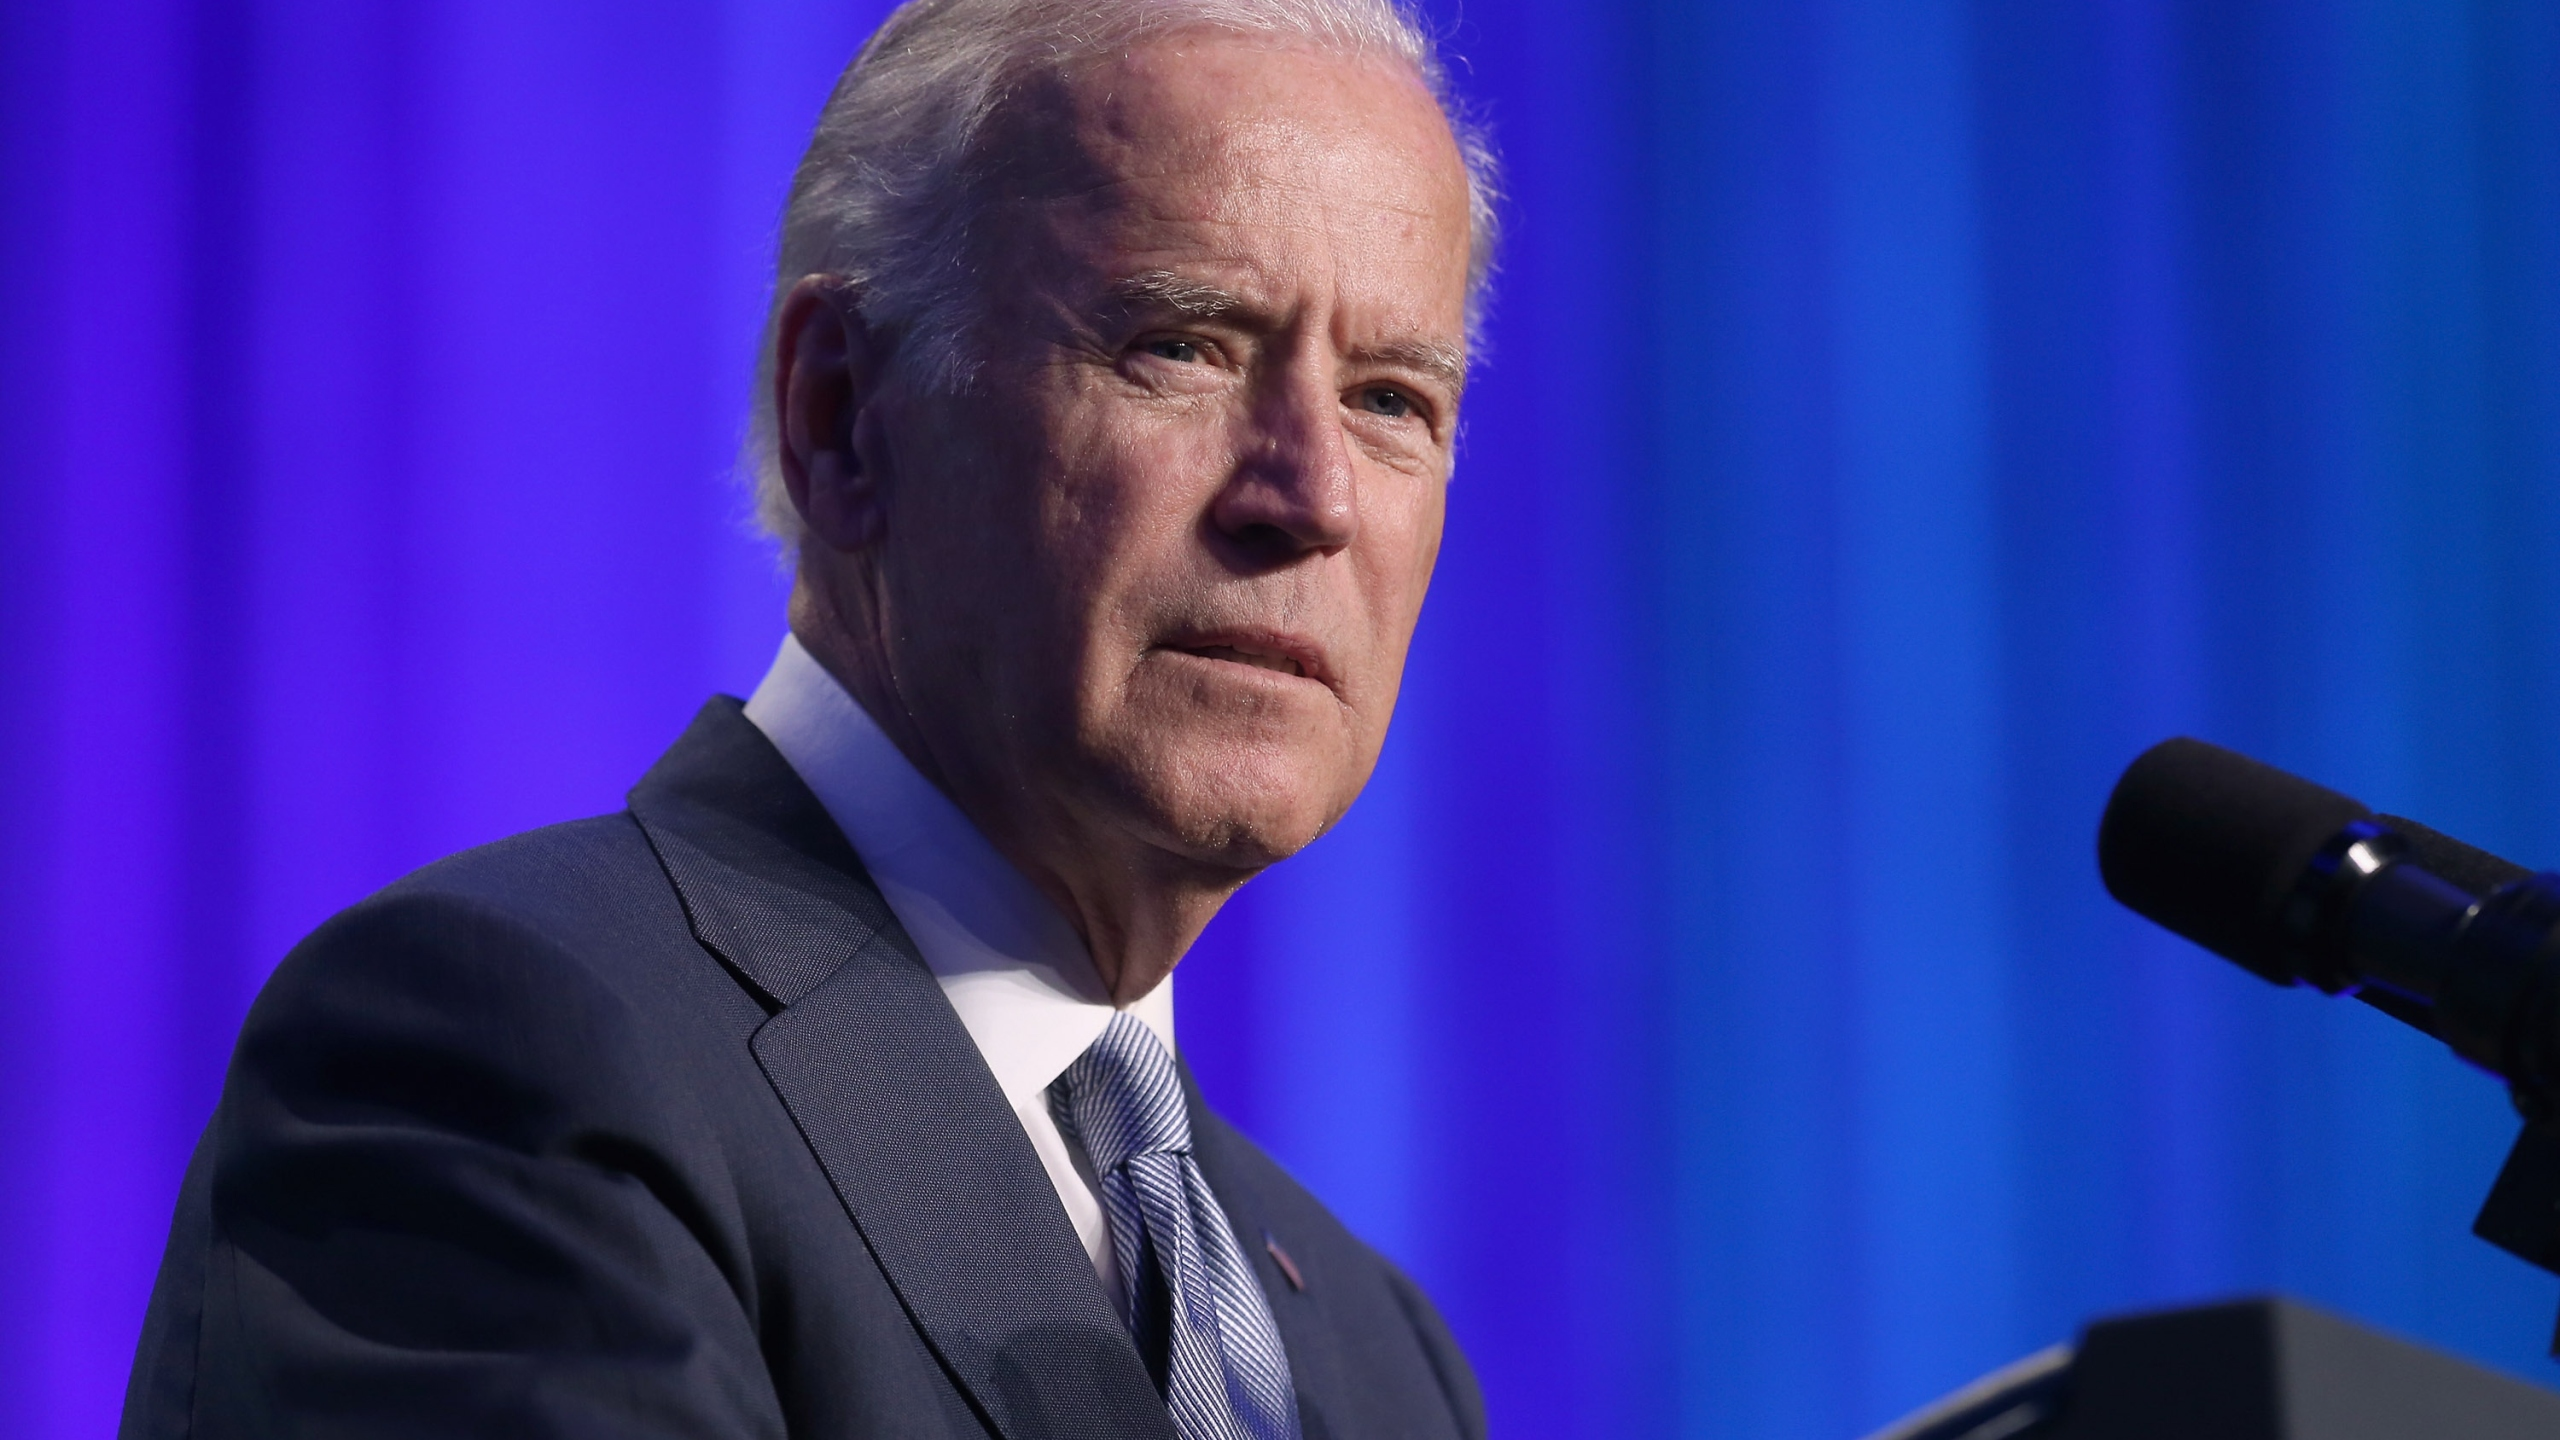 U.S. Vice President Joe Biden addresses the 10th annual Make Progress National Summit at the Walter E. Washington Convention Center July 16, 2015, in Washington, D.C. (Credit: Chip Somodevilla/Getty Images)